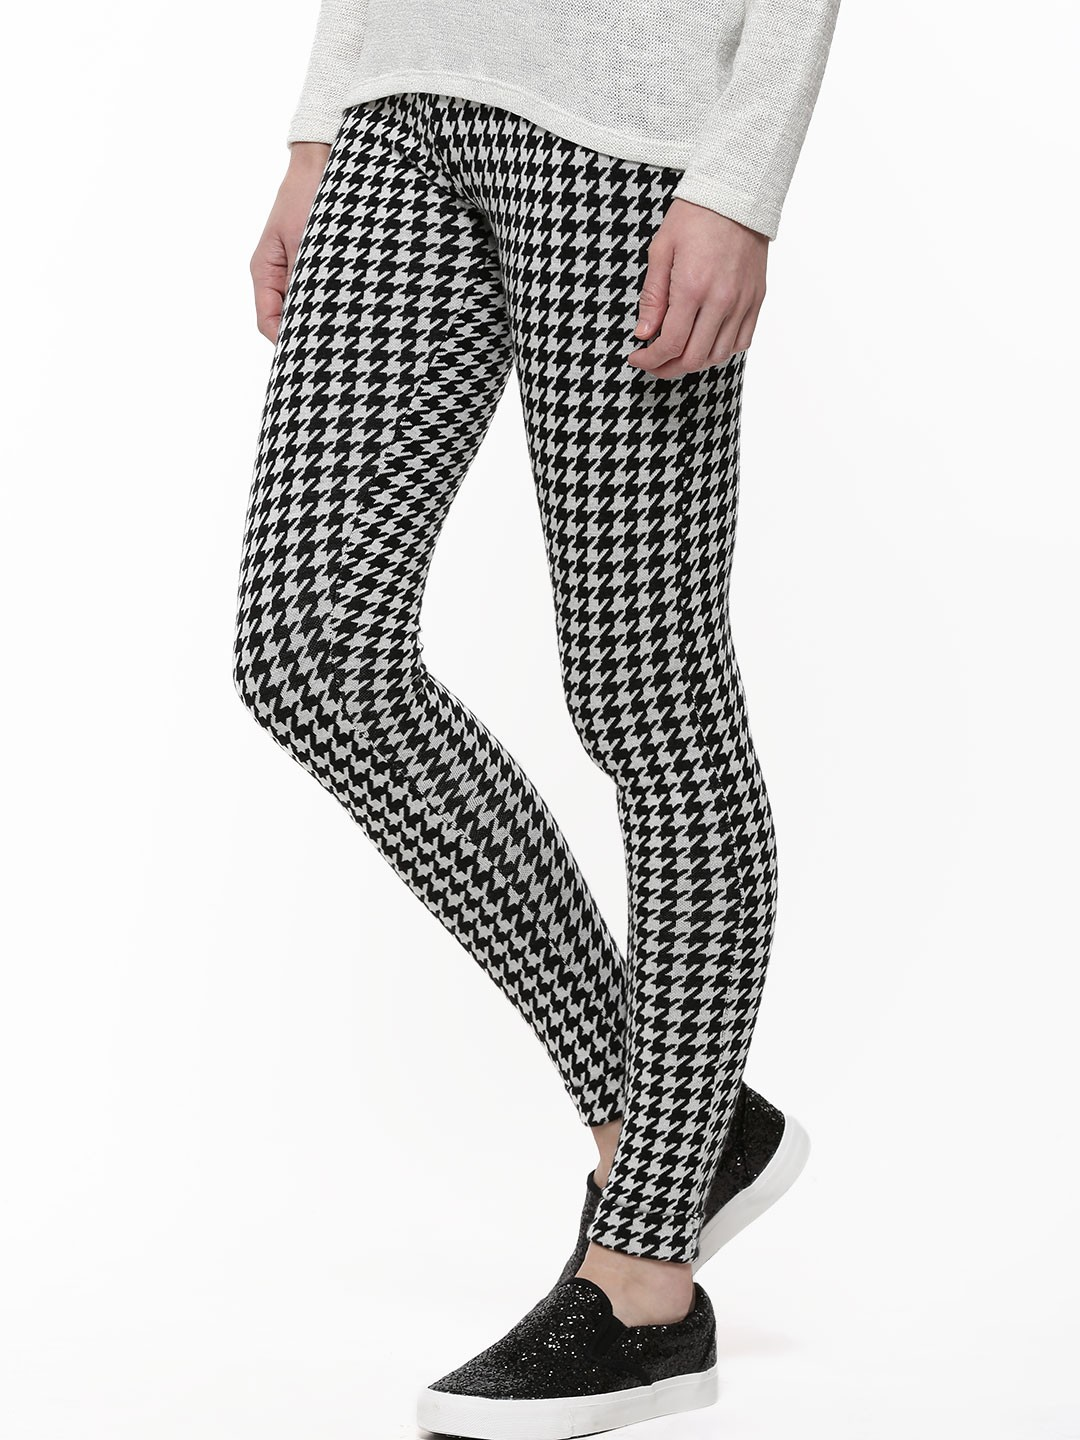 New Look Trousers & Leggings at Zando at great prices - available in a range of sizes. Shop for over 23 New Look Trousers & Leggings products. Free delivery available in South Africa. Spend R New Look Linen Blend Paperbag Trousers White Stripe.